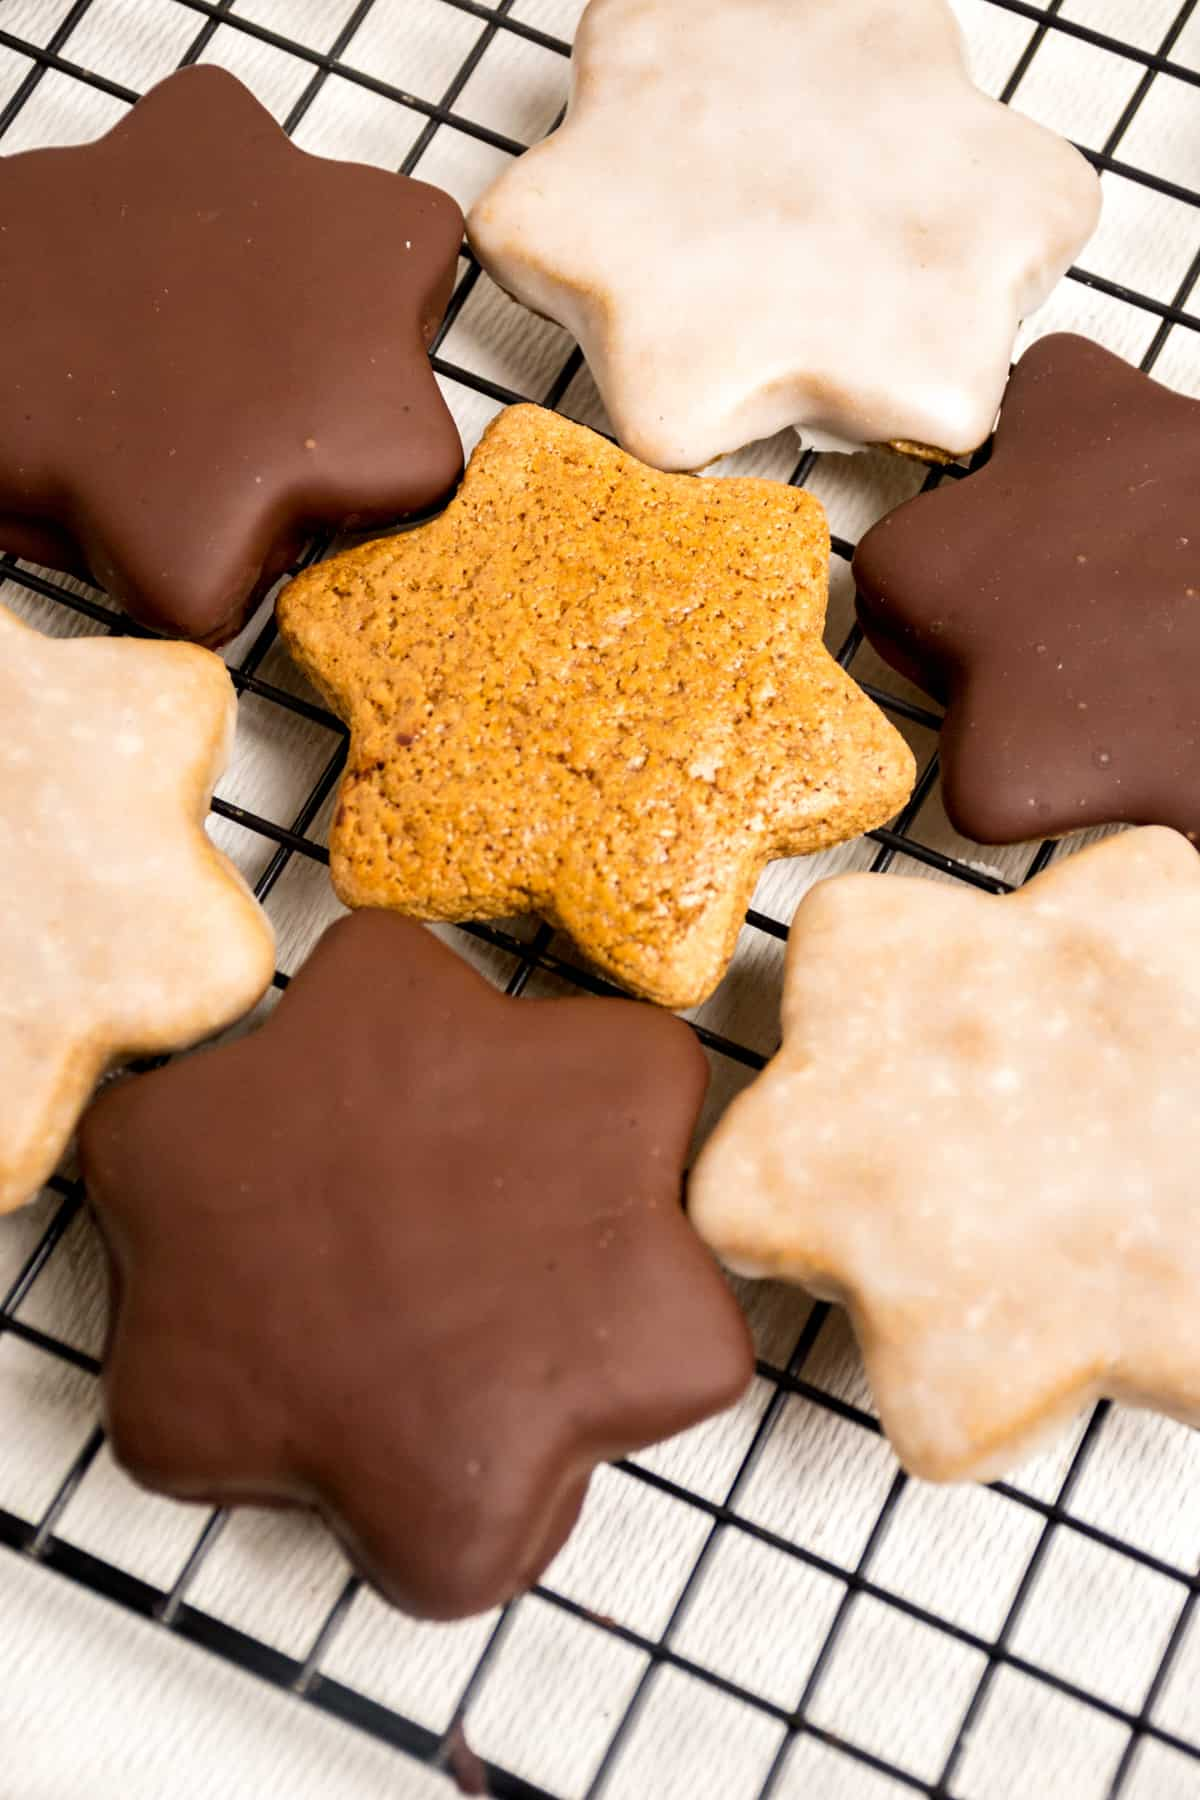 Star shaped lebkuchen, one plain, the remaing are covered in chocolate or lemon icing.